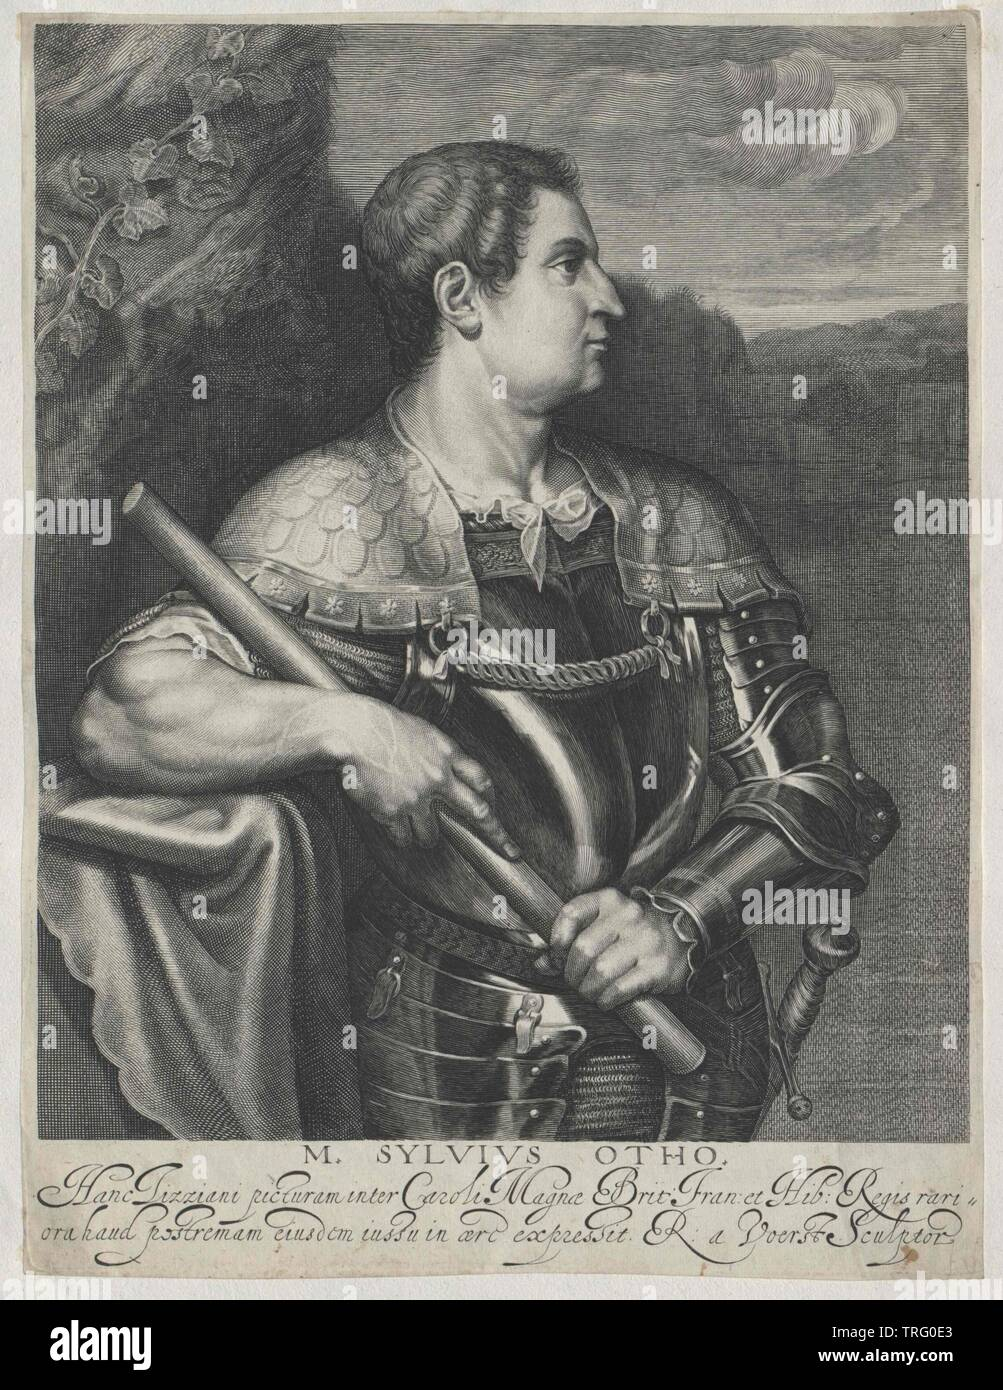 Otho, Roman emperor, Additional-Rights-Clearance-Info-Not-Available - Stock Image